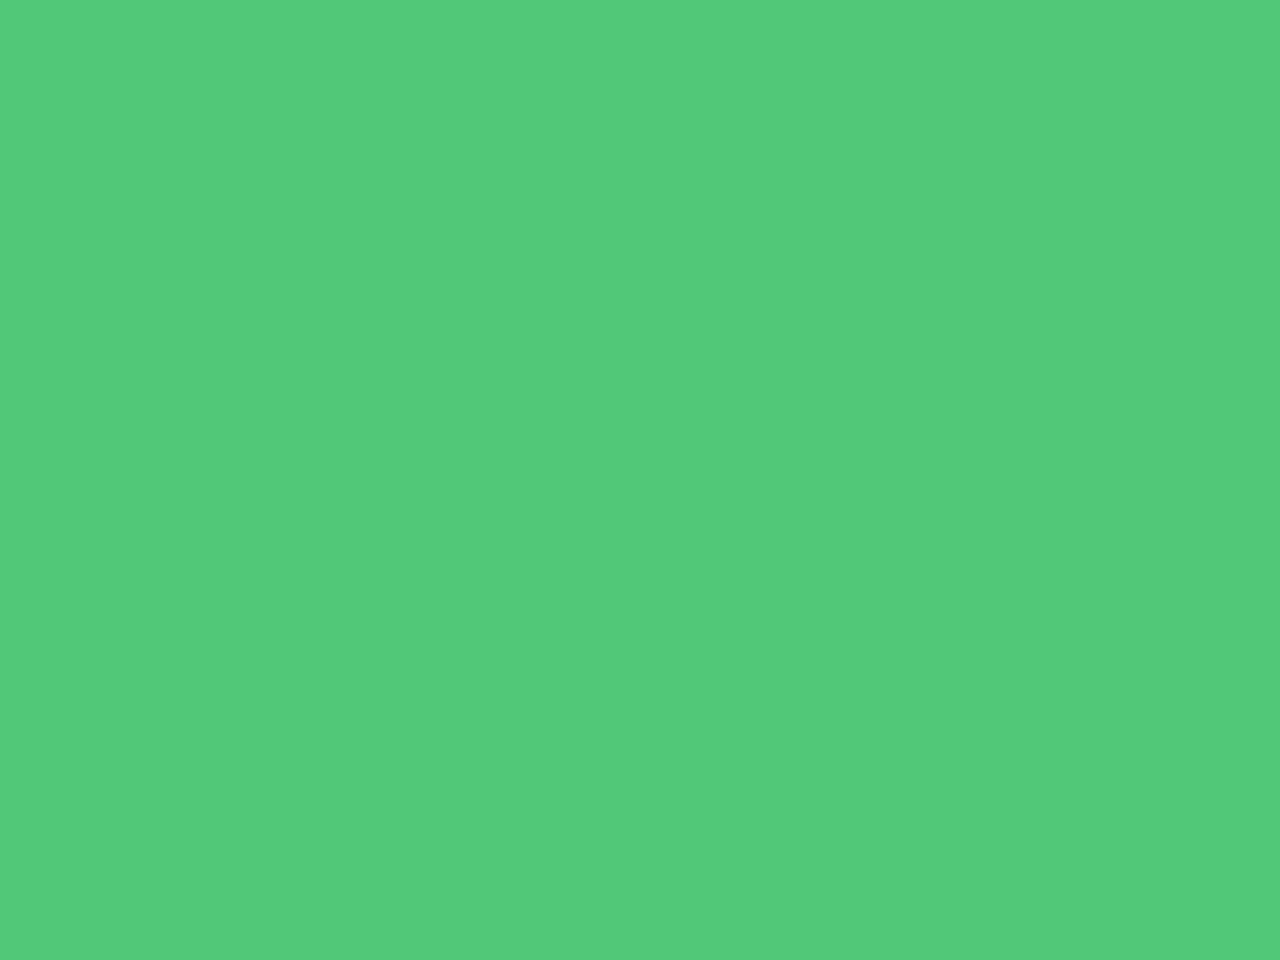 1280x960 Emerald Solid Color Background